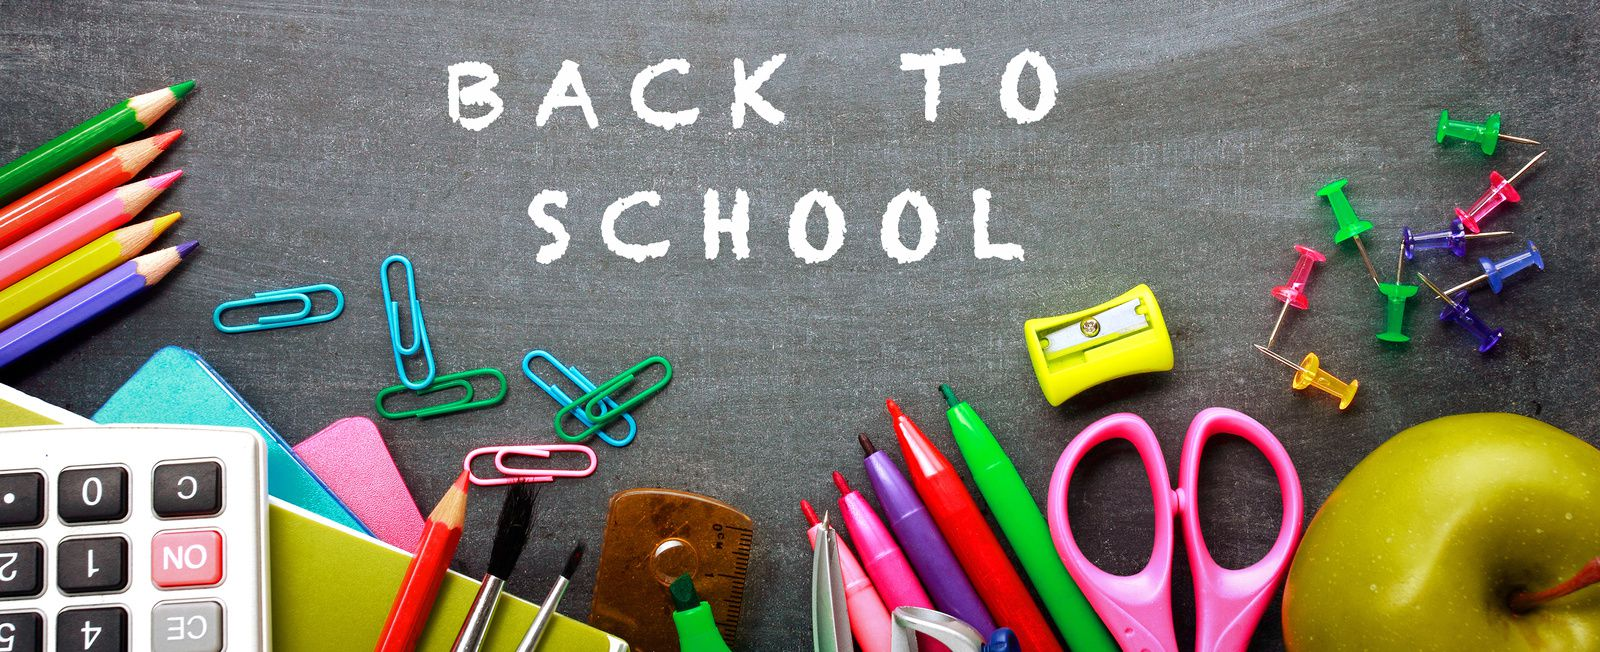 Crédit Photo : https://markettrack.com/mt360-news/mt360-news-2015-back-to-school-findings